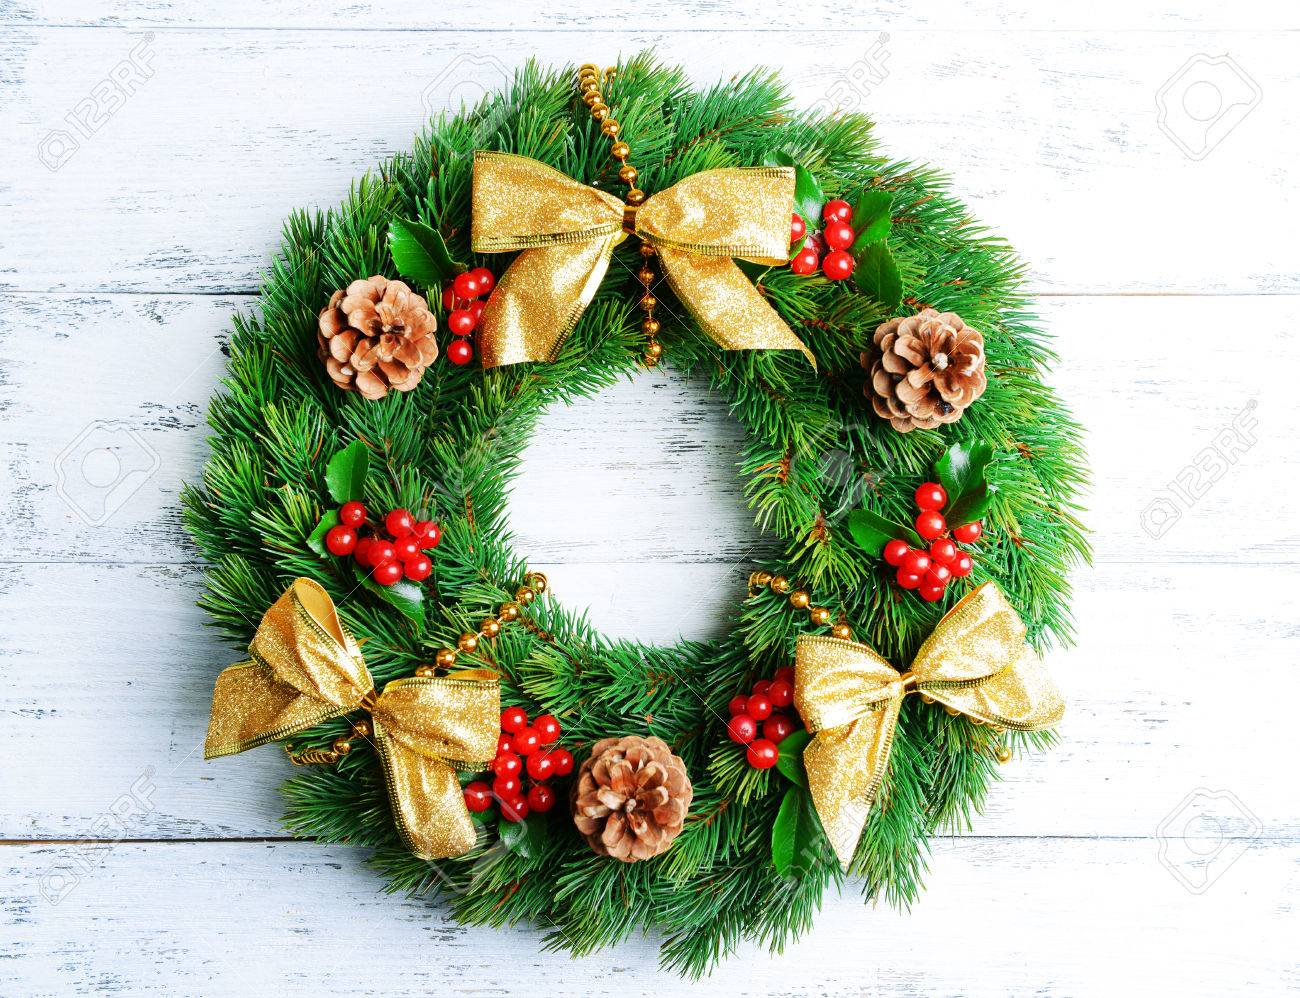 christmas decorative wreath with leafs of mistletoe on wooden background stock photo 50326331 - Mistletoe Christmas Decoration